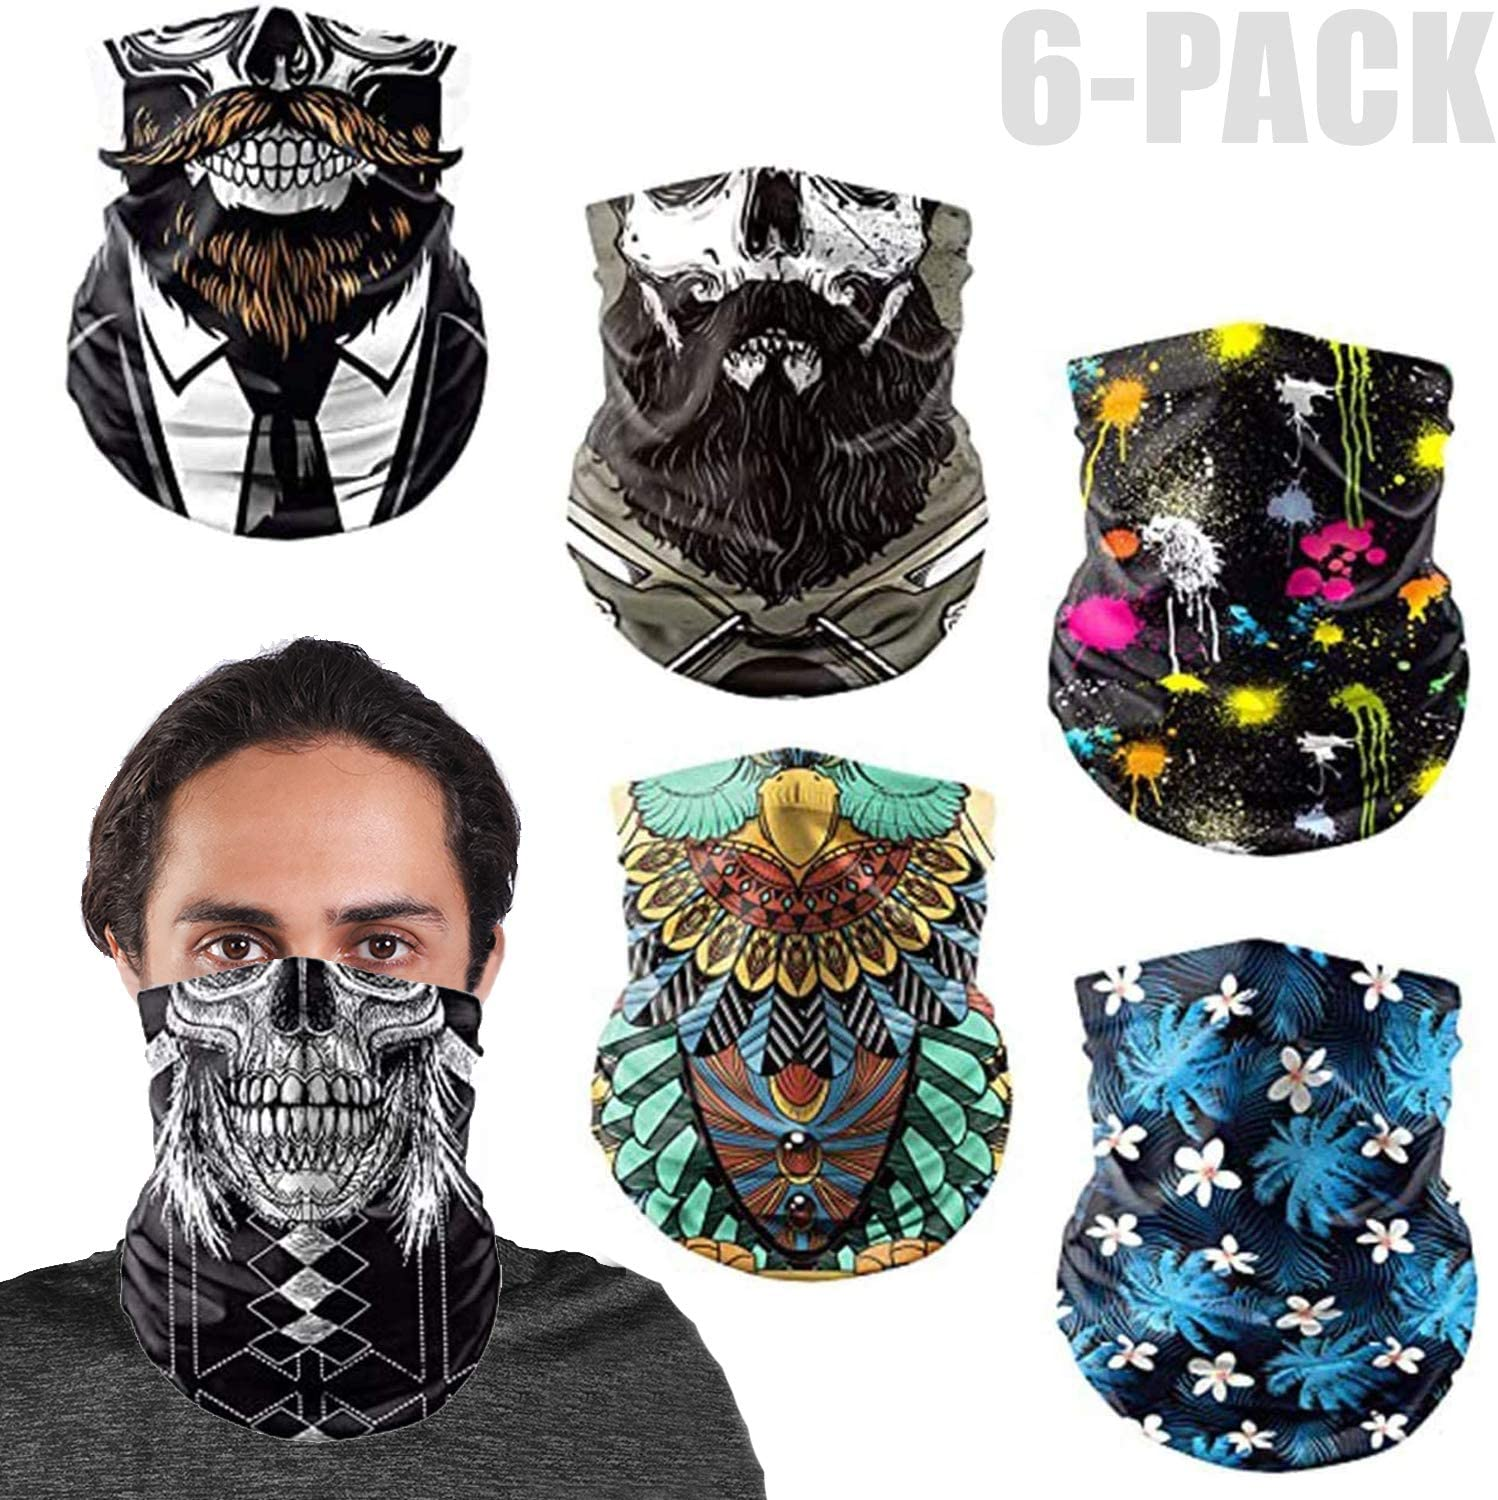 6-Pack Headband Bandana for Men Women Vetoo Loop Face Scarf Tube Balaclavas Ideal for Hip-Hop Cycling Handkerchief Neckerchief Multifunctional Headwear